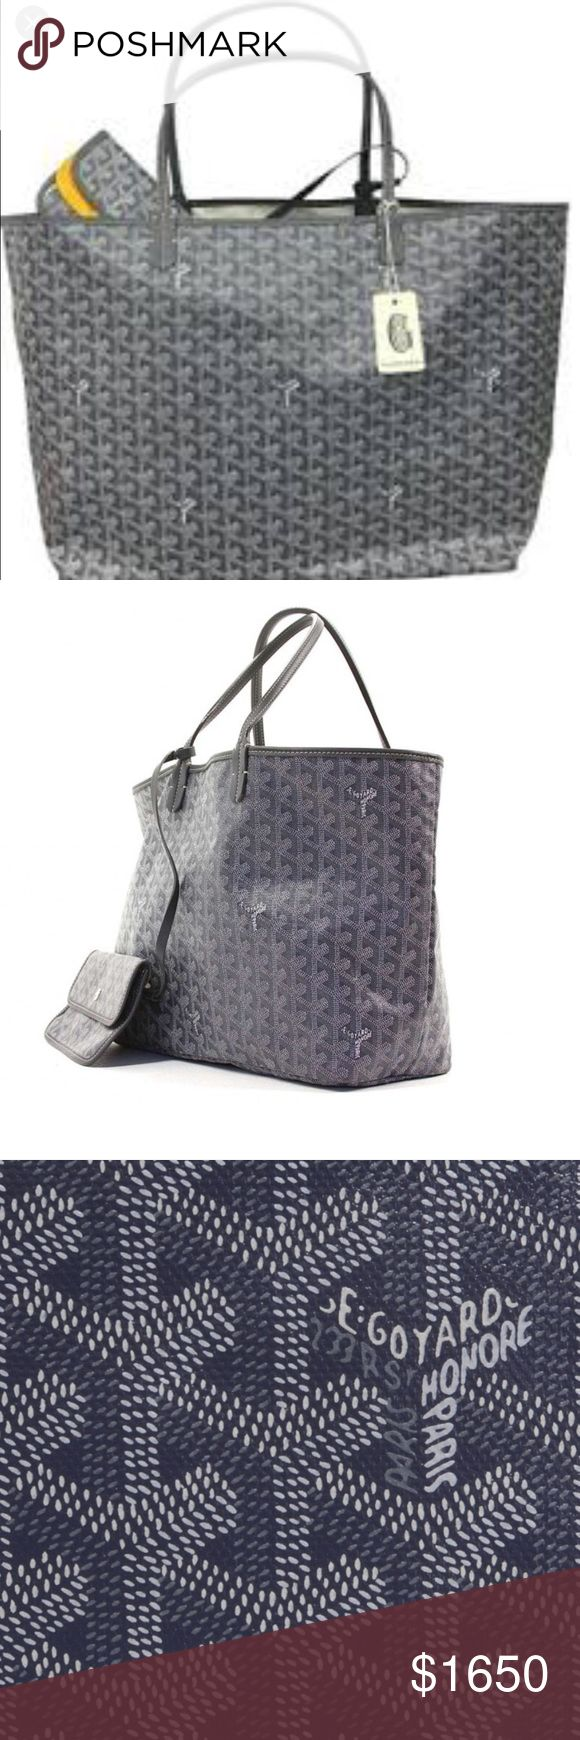 Goyard gray large size tote Goyard authentic large size tote in gray.st Louis GM size and shape. Like new condition. NO visible signs of wear. Purchased at Barneys NYC in February. Original price is 1750. In excellent condition - interior and exterior. Small wallet attached and included. Have original Goyard dust bag and tags are included. Goyard Bags Totes